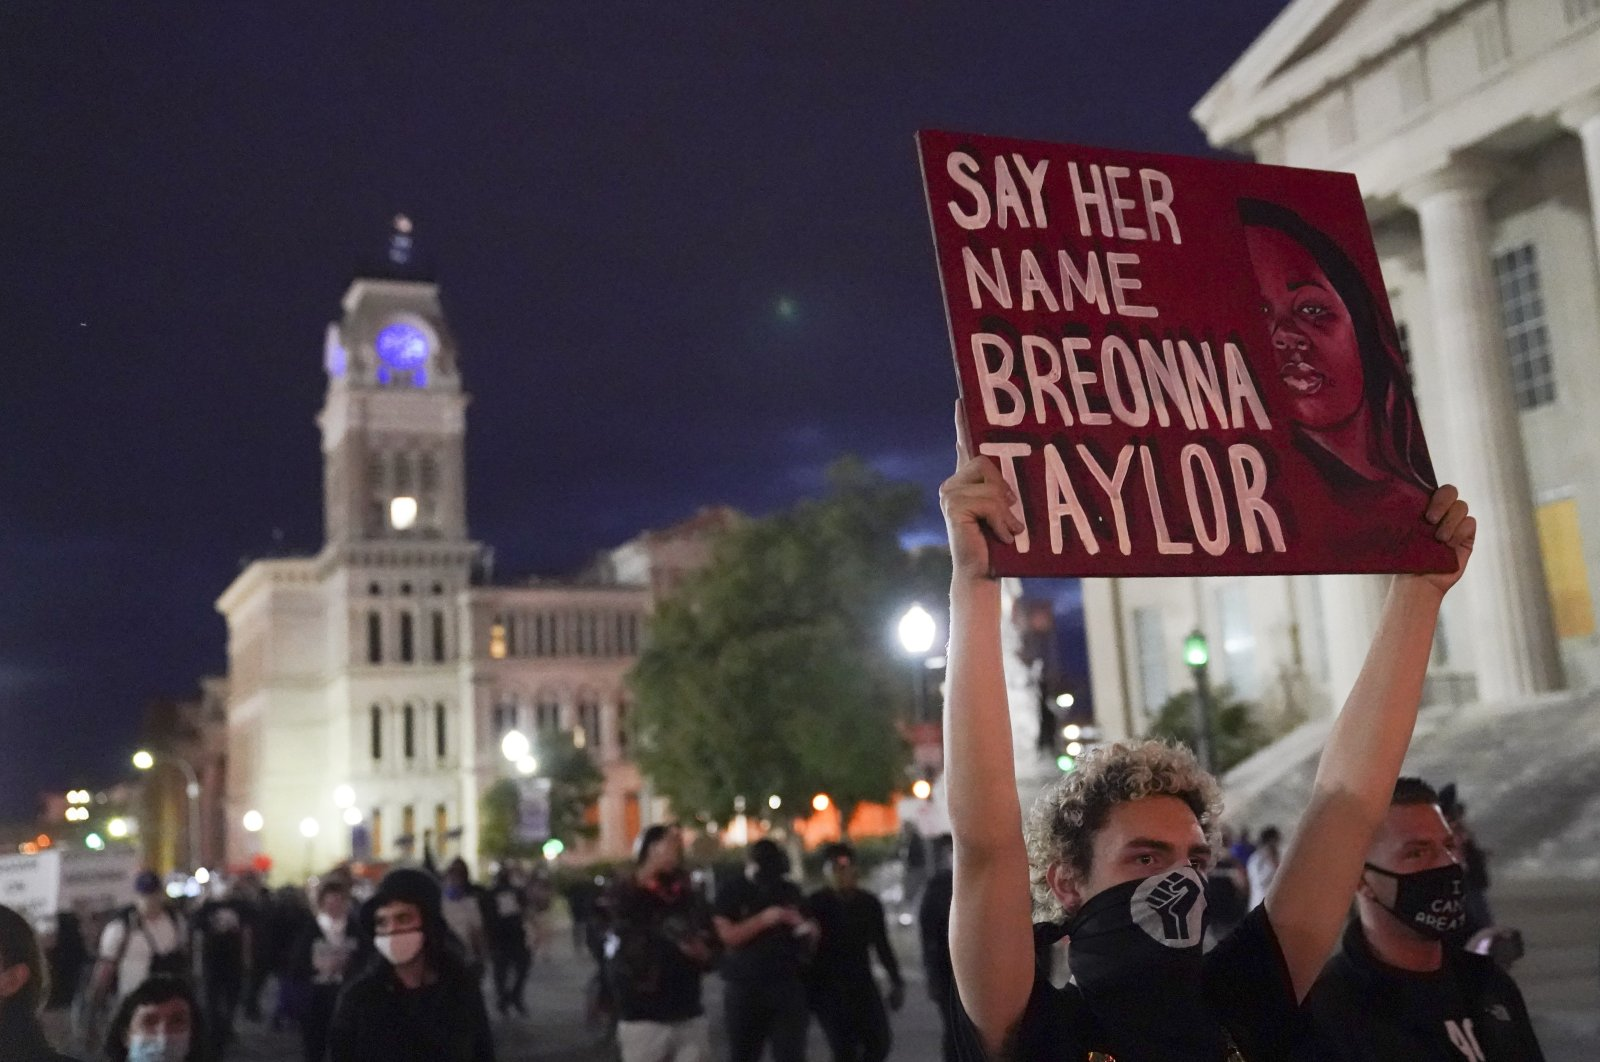 Protesters march following the decision not to charge police officers for killing Breonna Taylor, Sept. 24, 2020, in Louisville, Kentucky. (AP Photo)